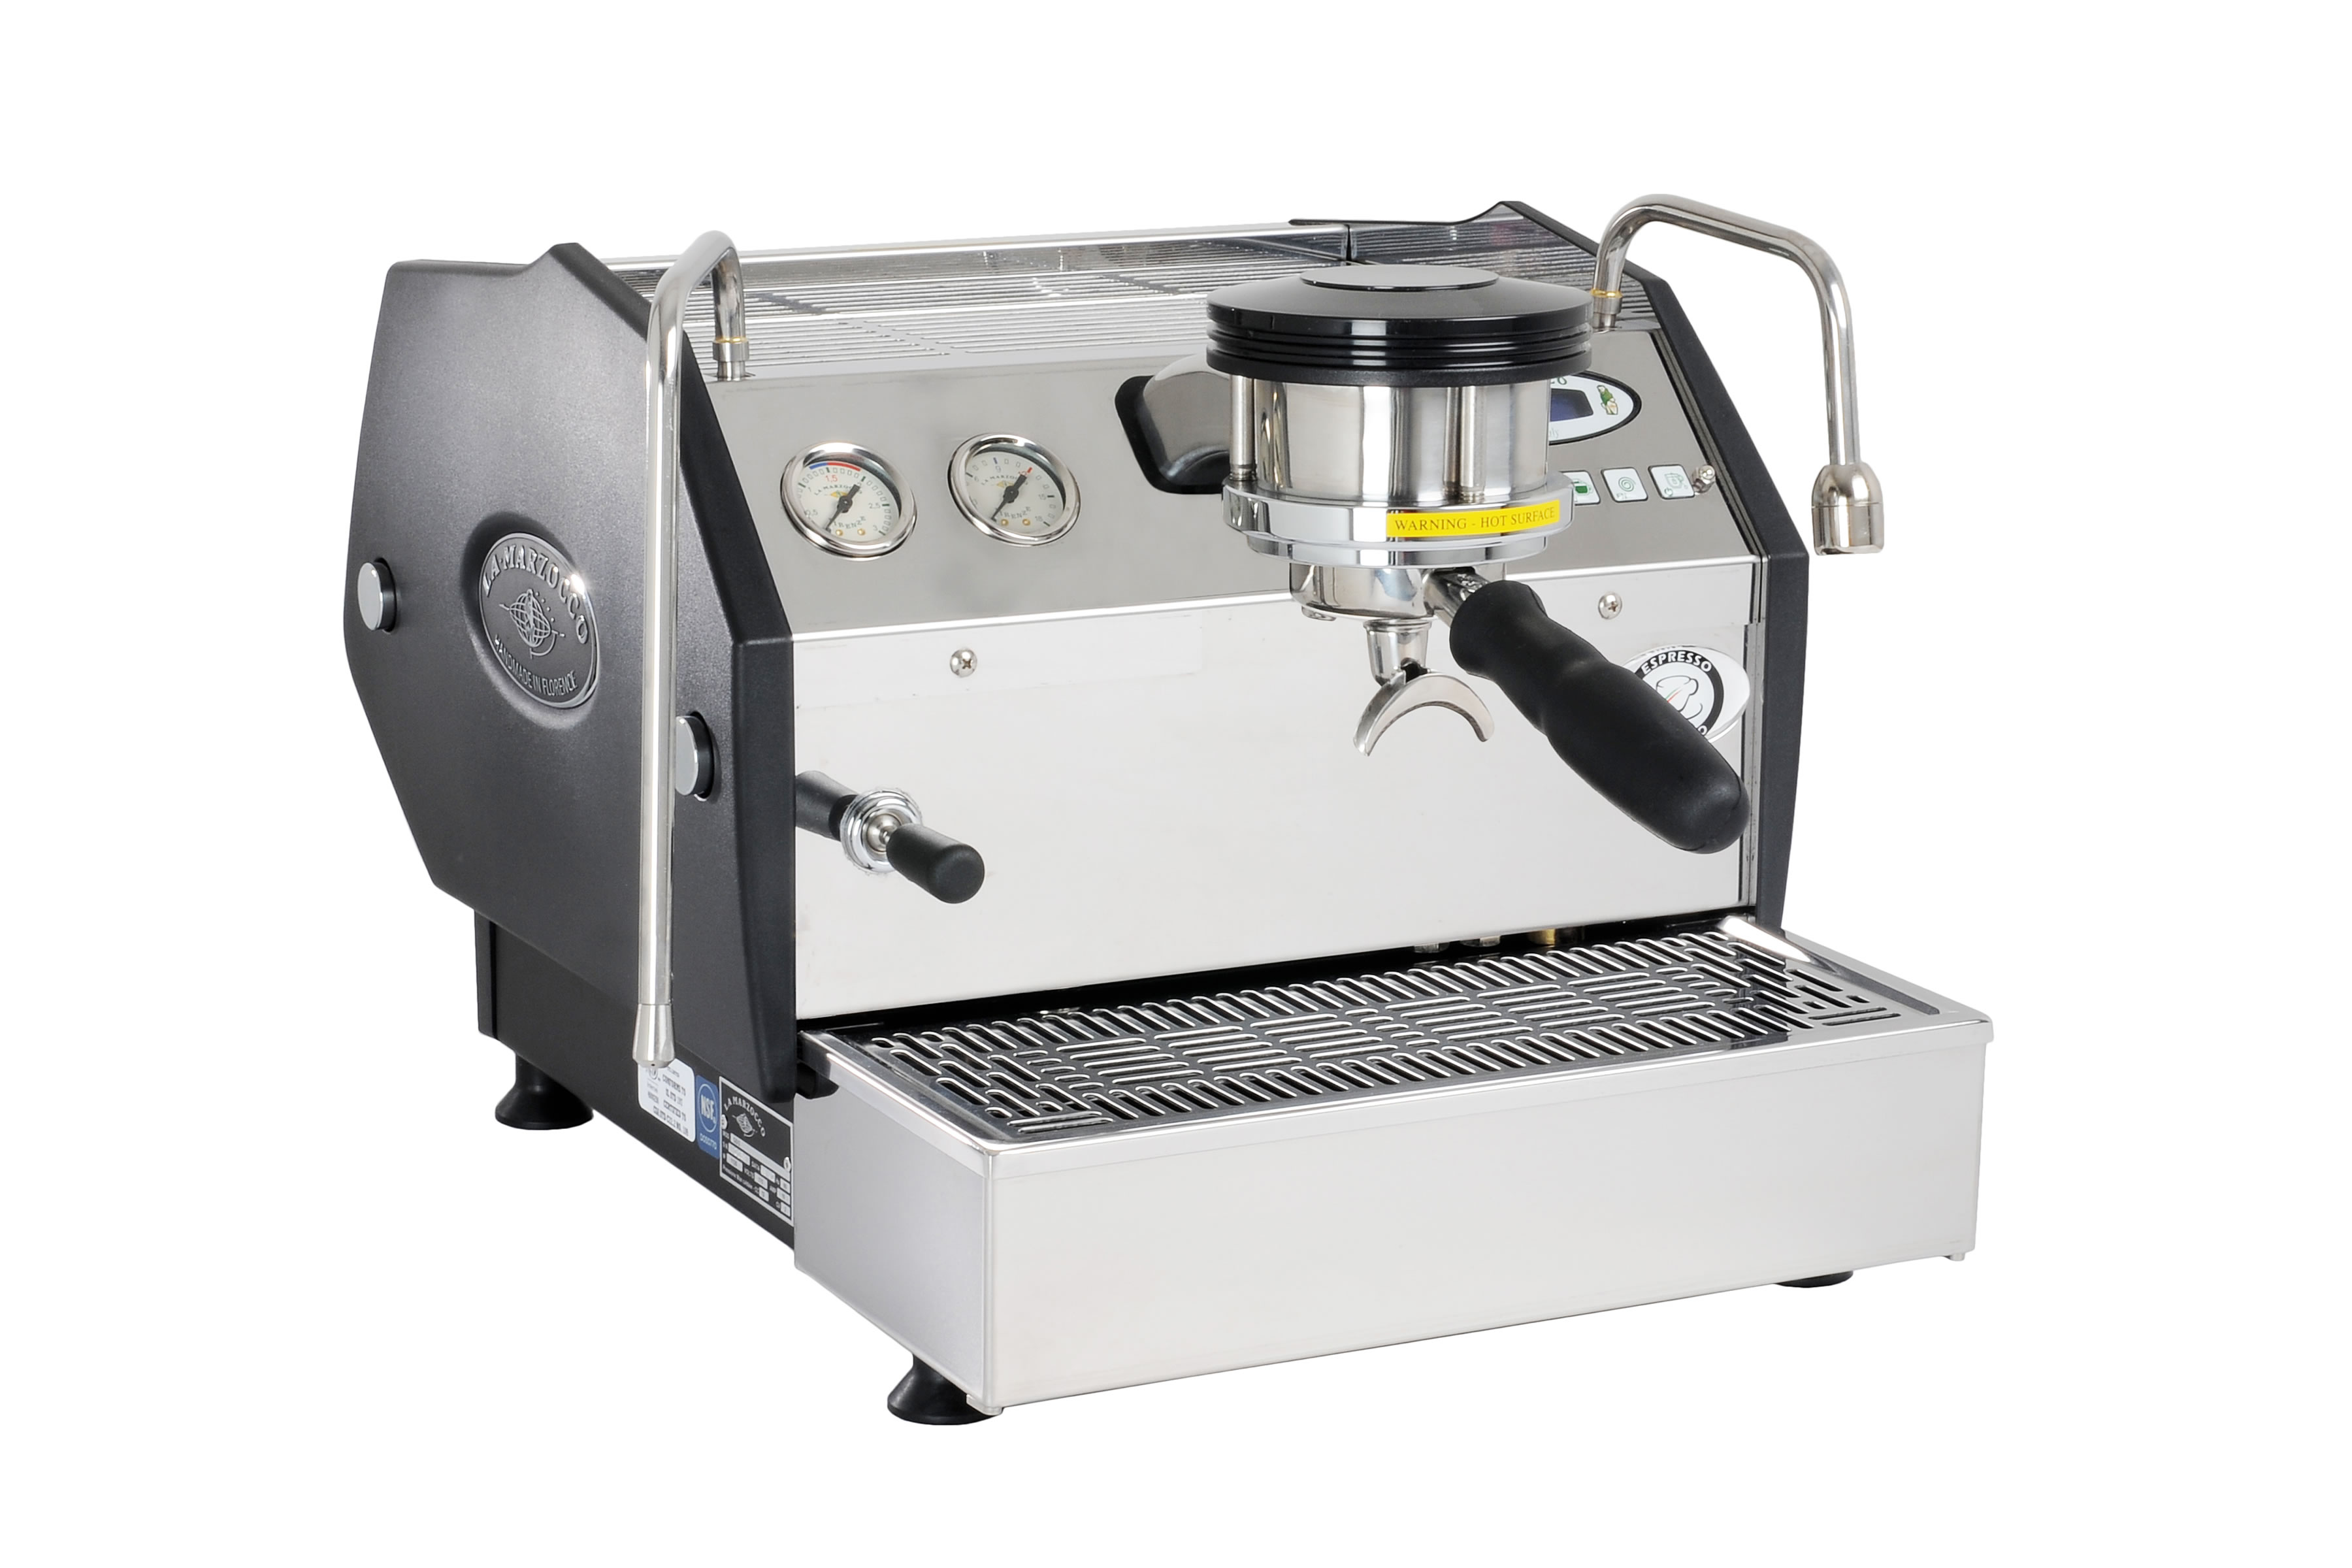 Private Kaffeemaschine Im Büro Quick Mill Kaffeemaschine Espressomaschinen